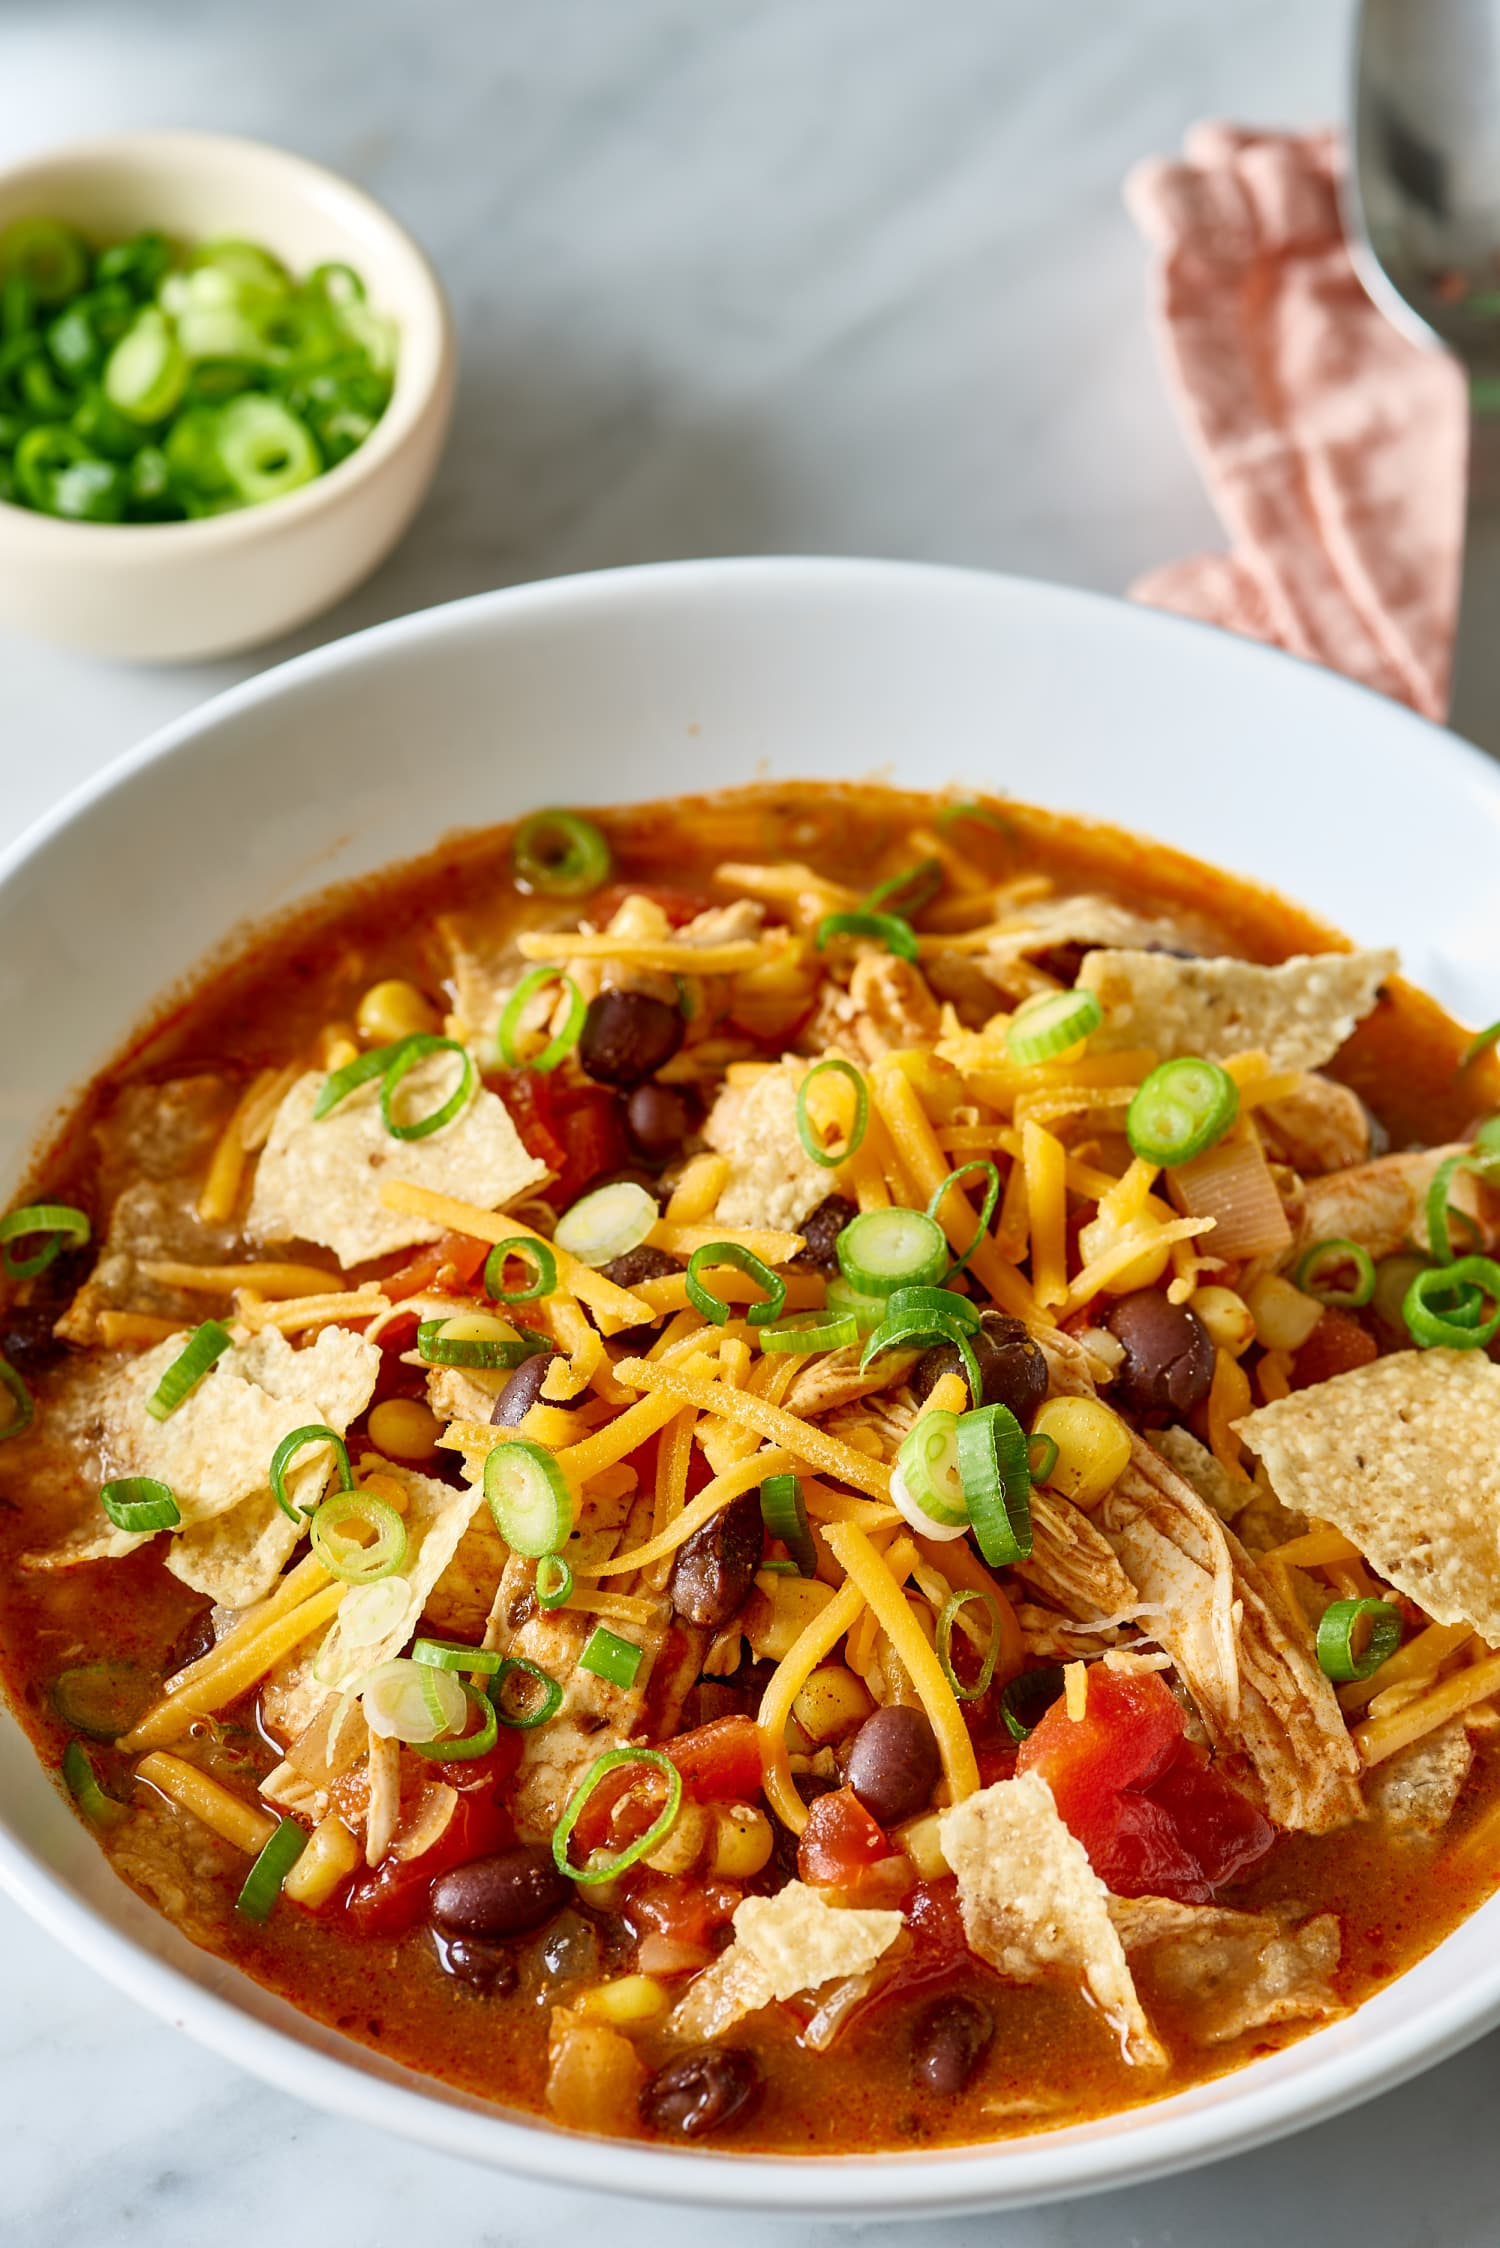 This Chicken Taco Soup Brings the Smoke and Spice in Just 30 Minutes